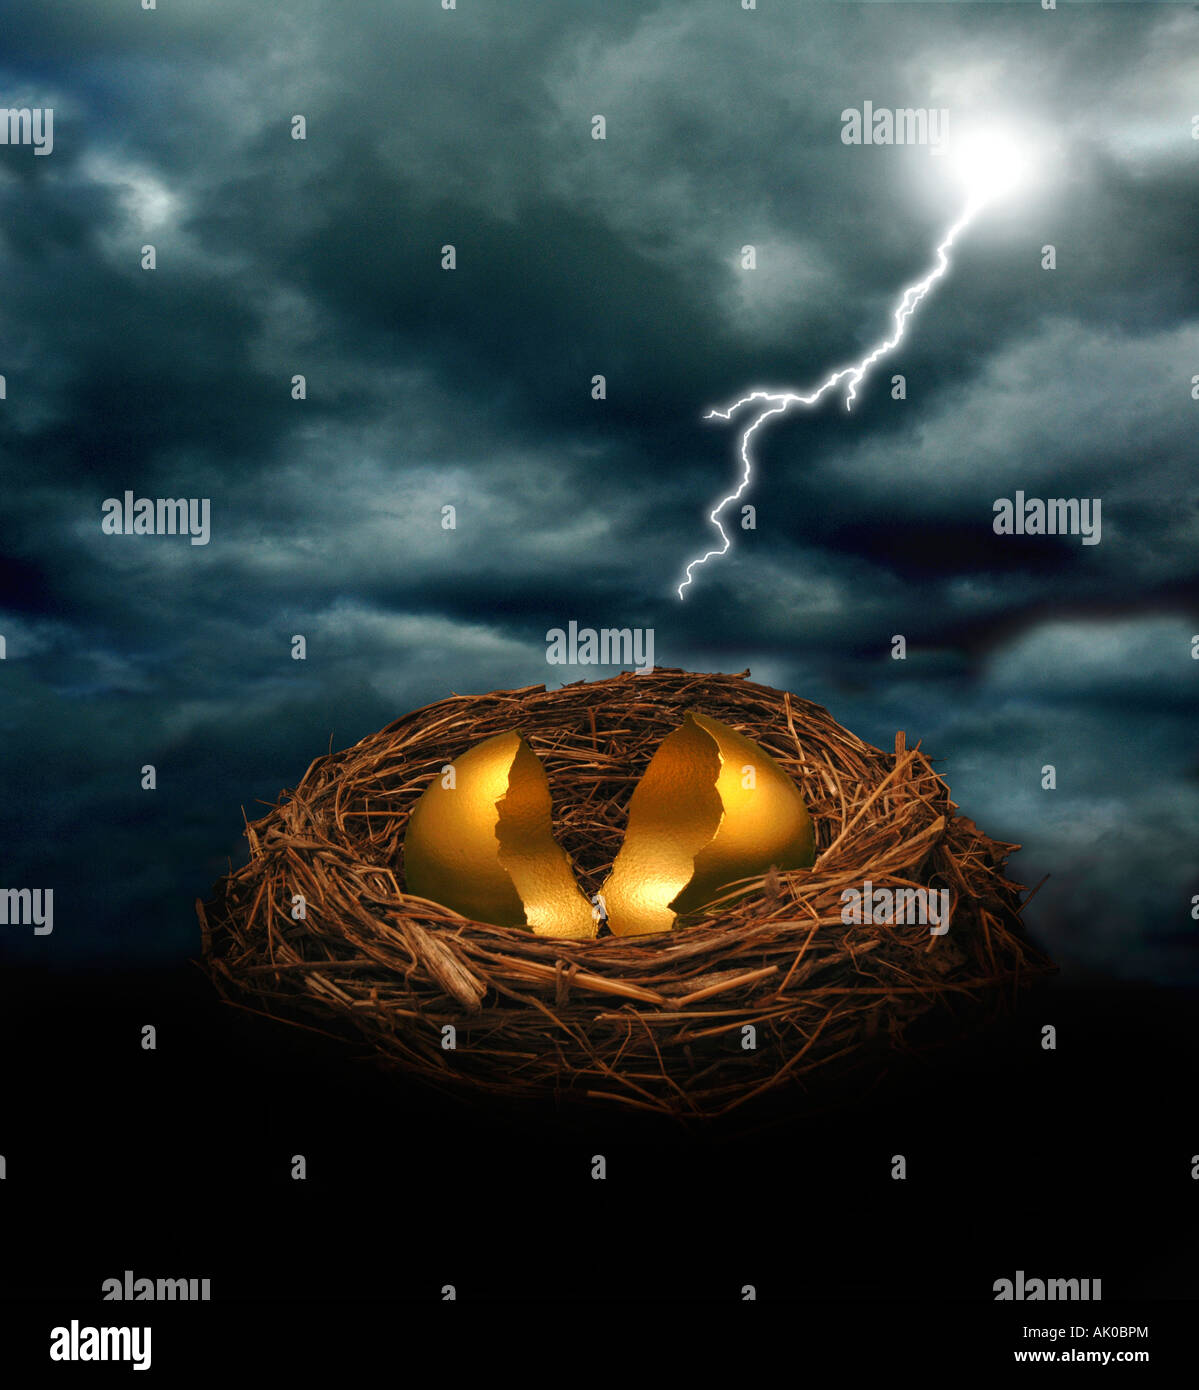 A cracked golden nest egg under a dark cloudy sky with a bolt of lightning Could symbolize financial crash threat - Stock Image